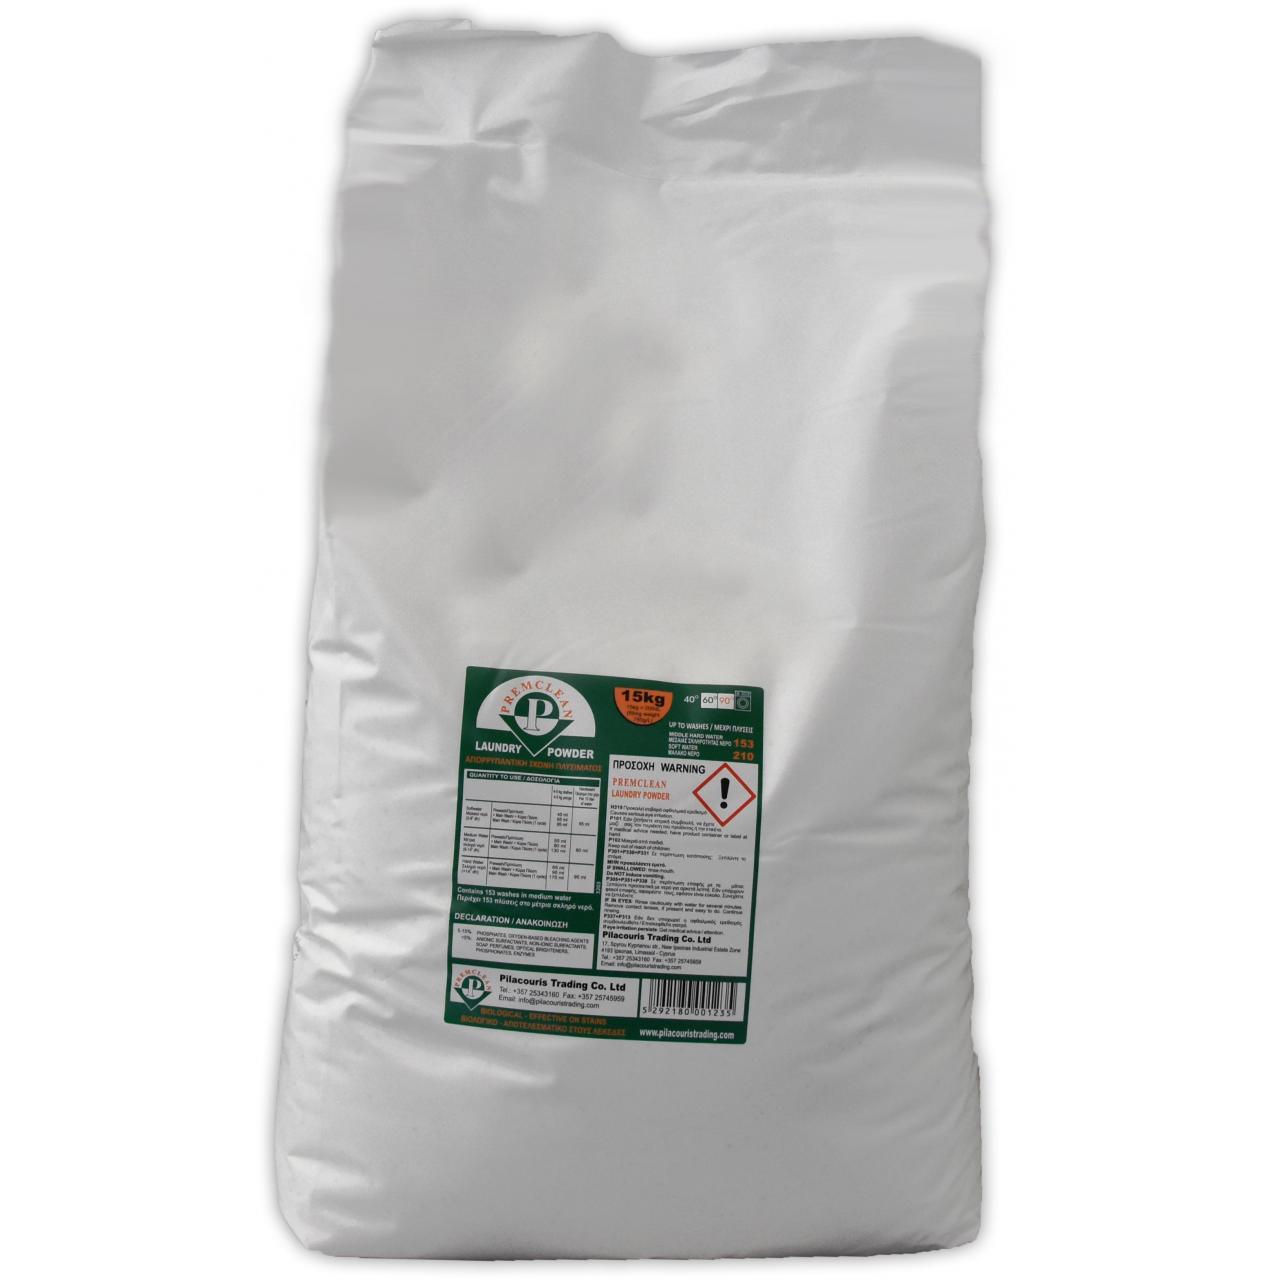 Quality Premclean Laundry Powder for sale